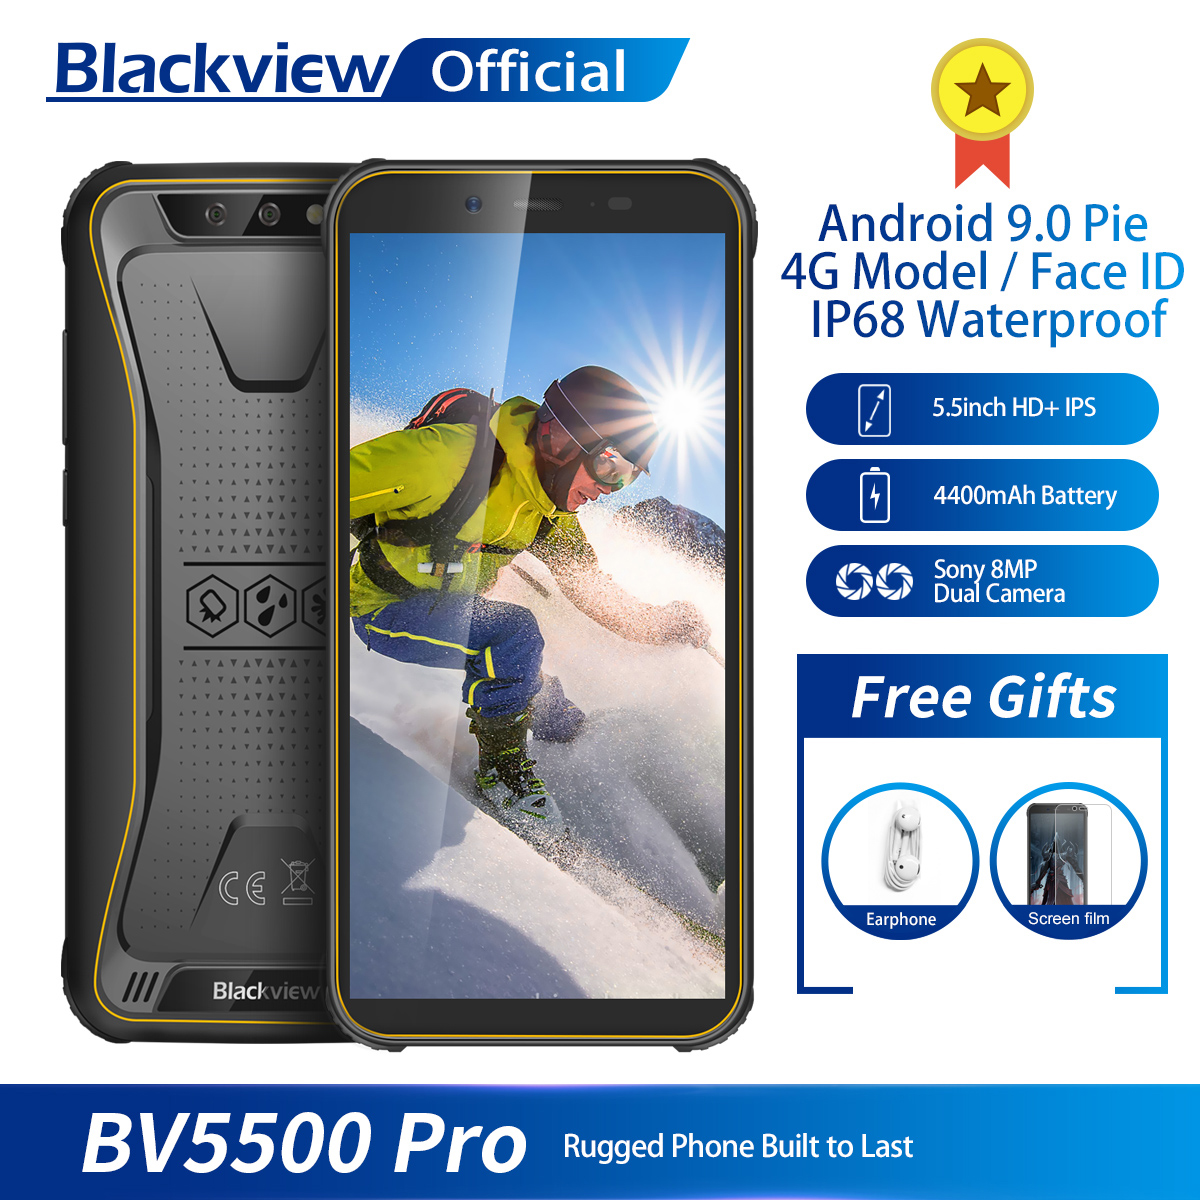 "Blackview BV5500 Pro IP68 Waterproof 4G Mobile Phone 3GB+16GB 5.5"" Screen 4400mAh Android 9.0 Pie Dual SIM Rugged Smartphone(China)"